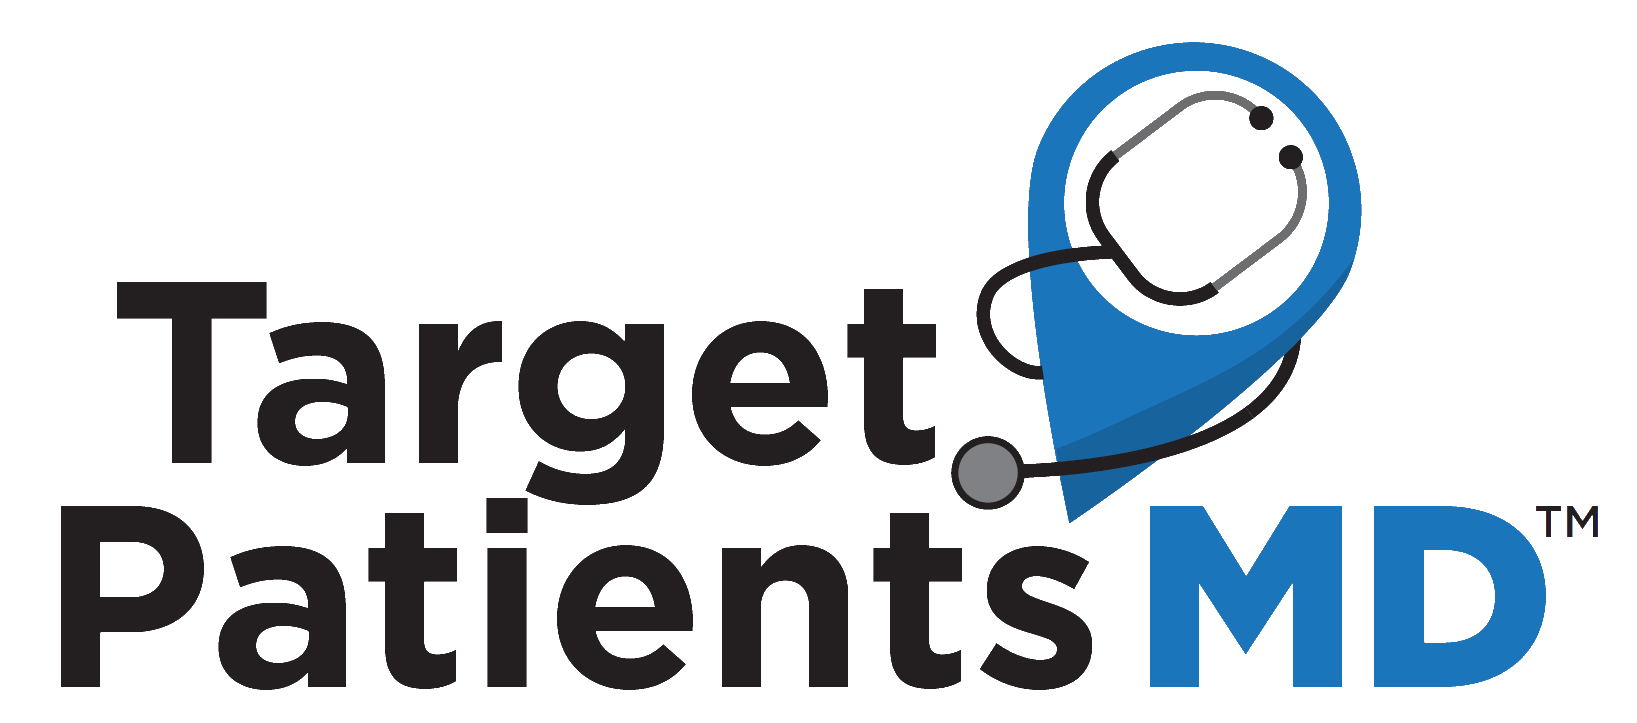 Target Patients: Who We Are